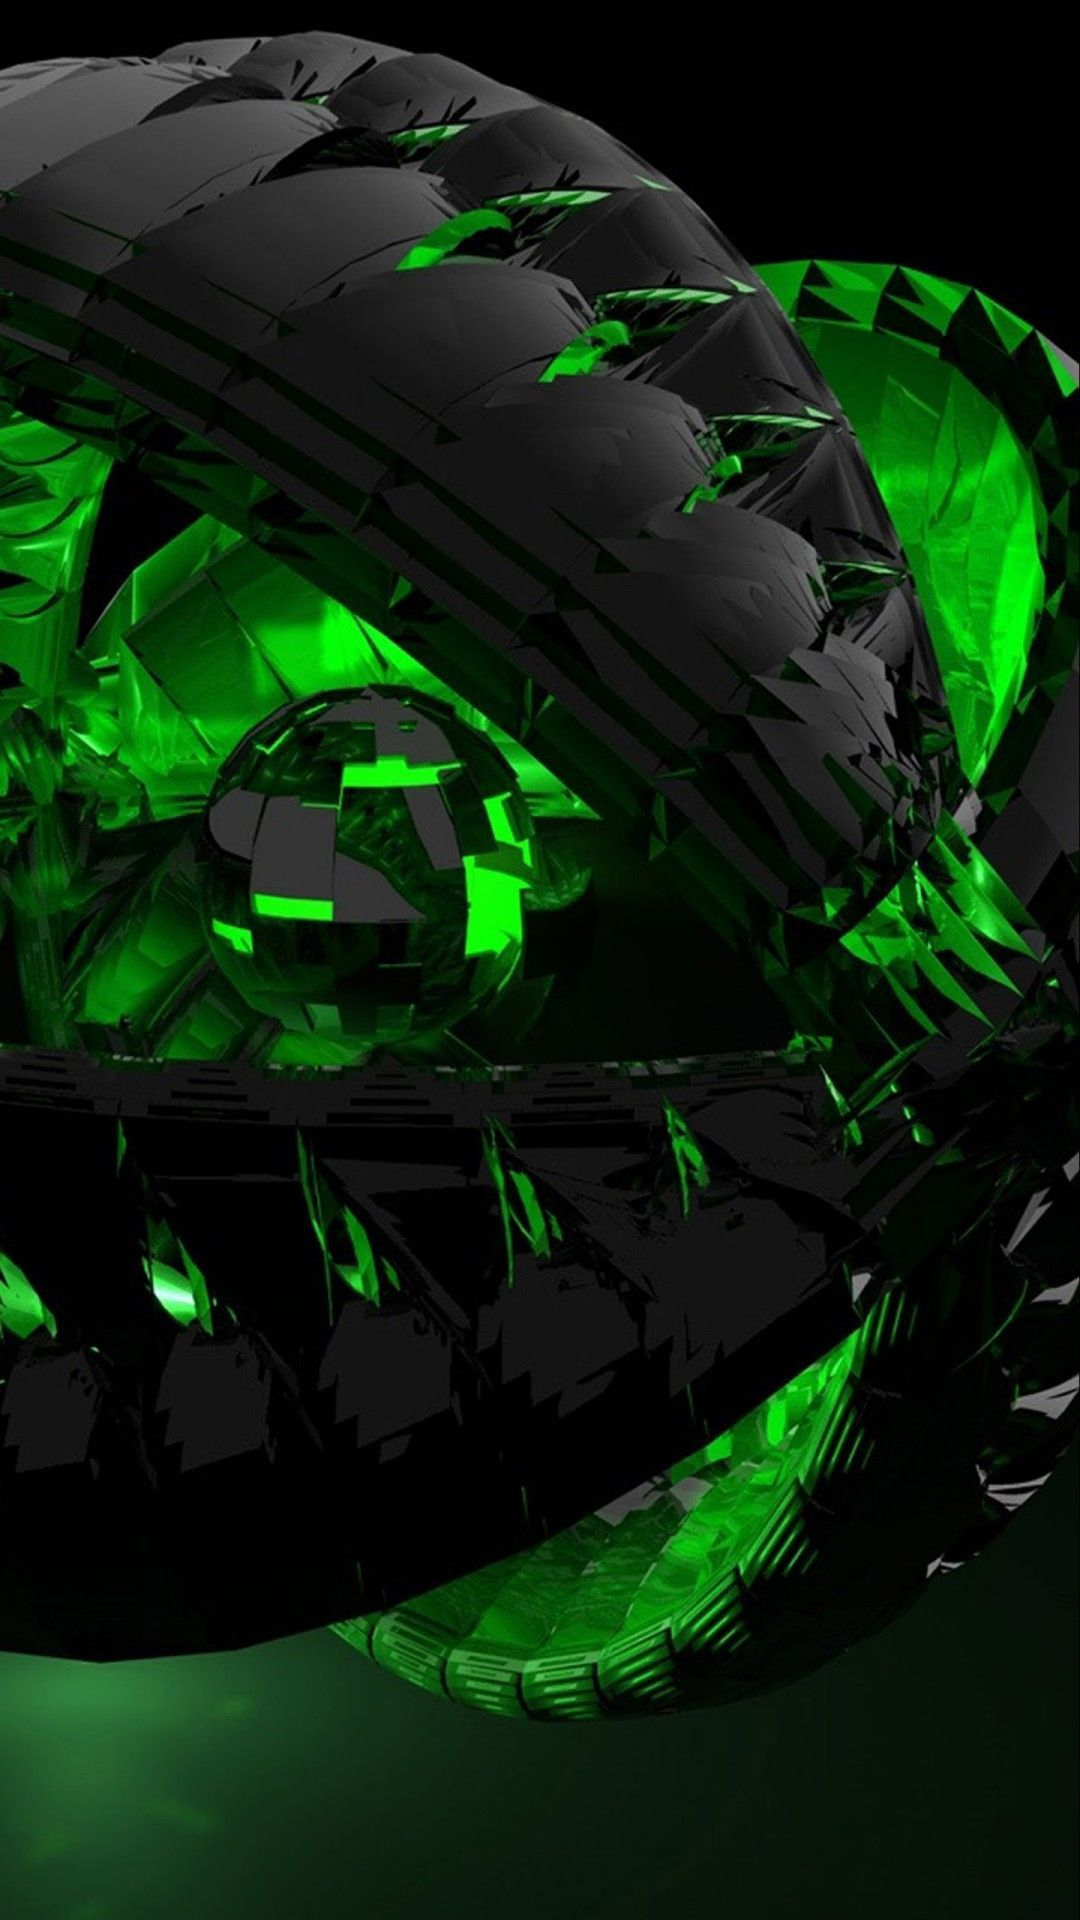 Amoled Green Android Wallpapers - Wallpaper Cave